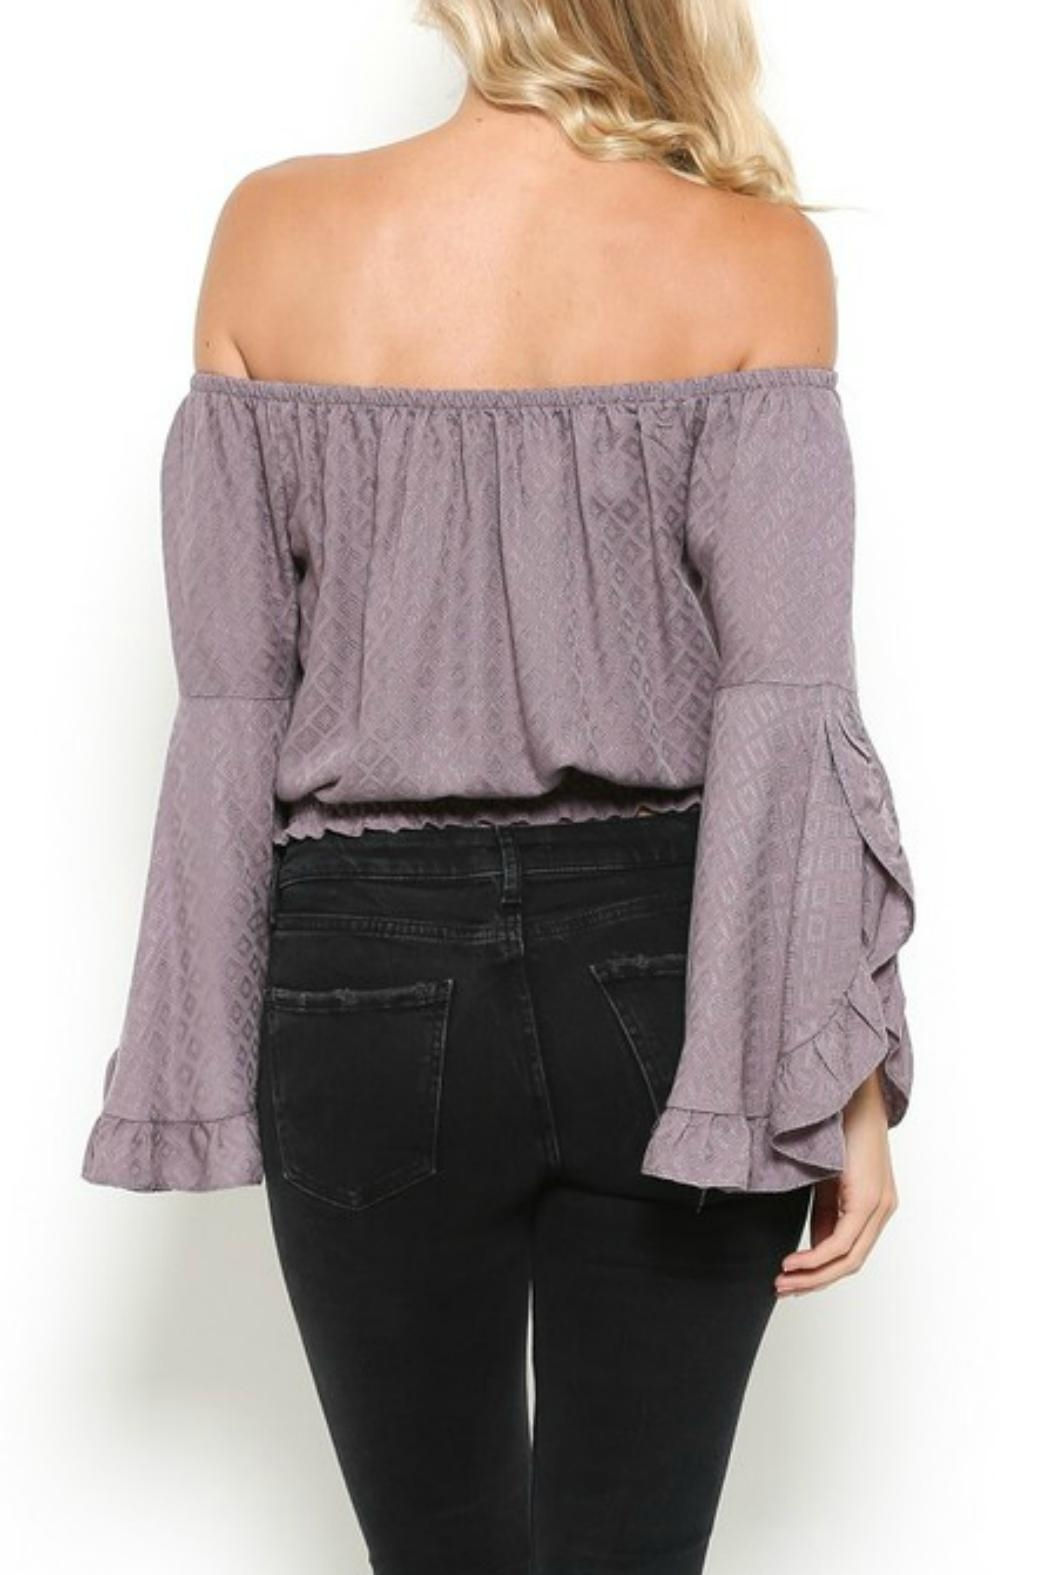 Illa Illa Lavender Off-The-Shoulder Top - Side Cropped Image